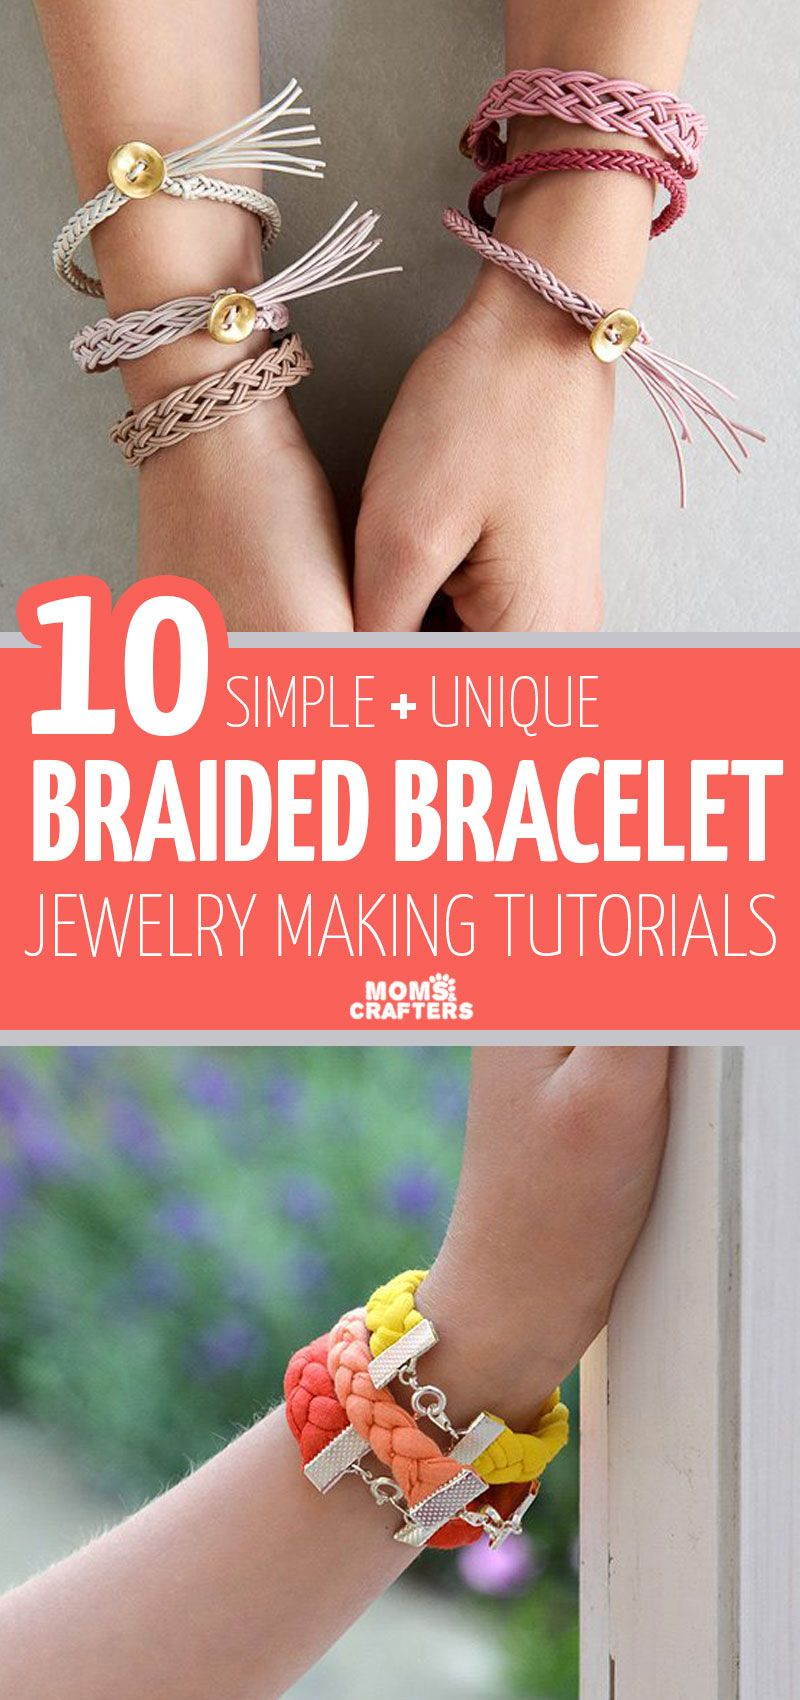 Photo of Make these fun braided bracelets with easy tutorials!